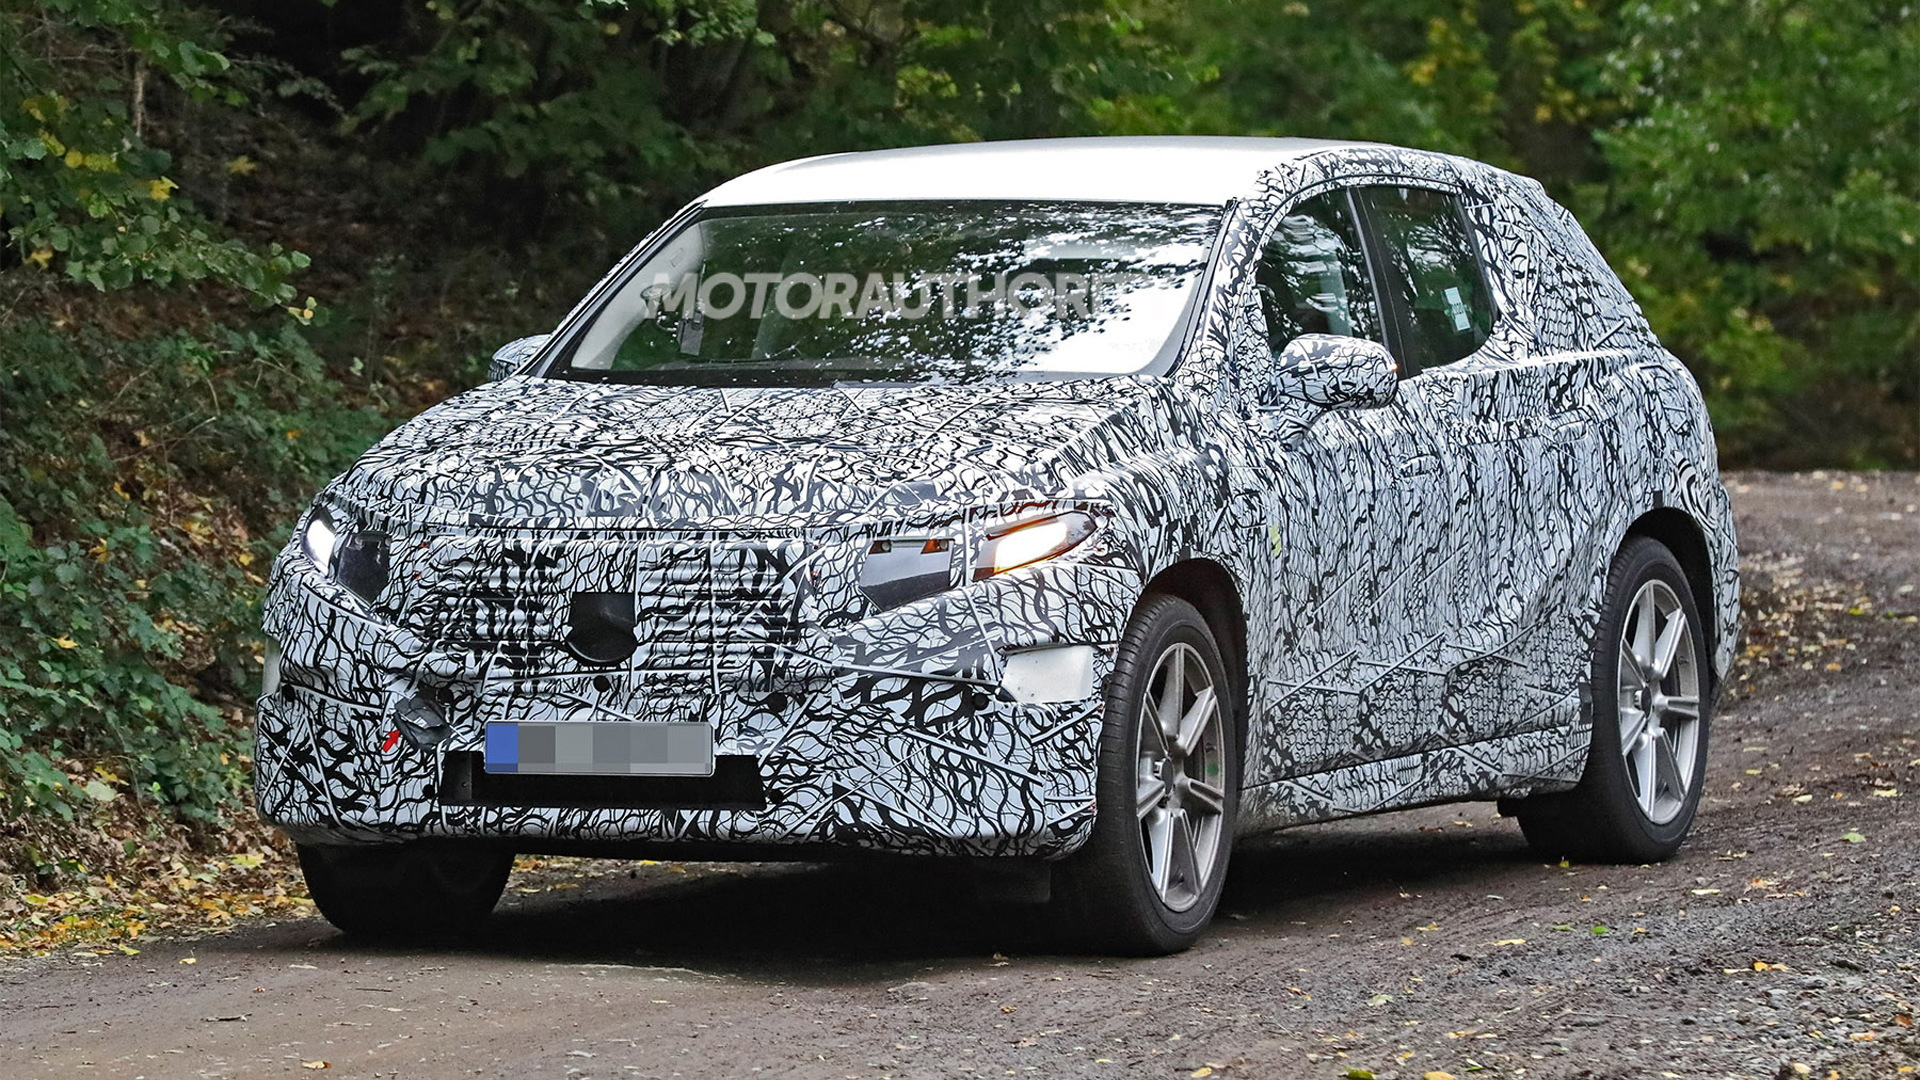 2023 Mercedes-Benz EQS SUV spy shots - Photo credit: S. Baldauf/SB-Medien